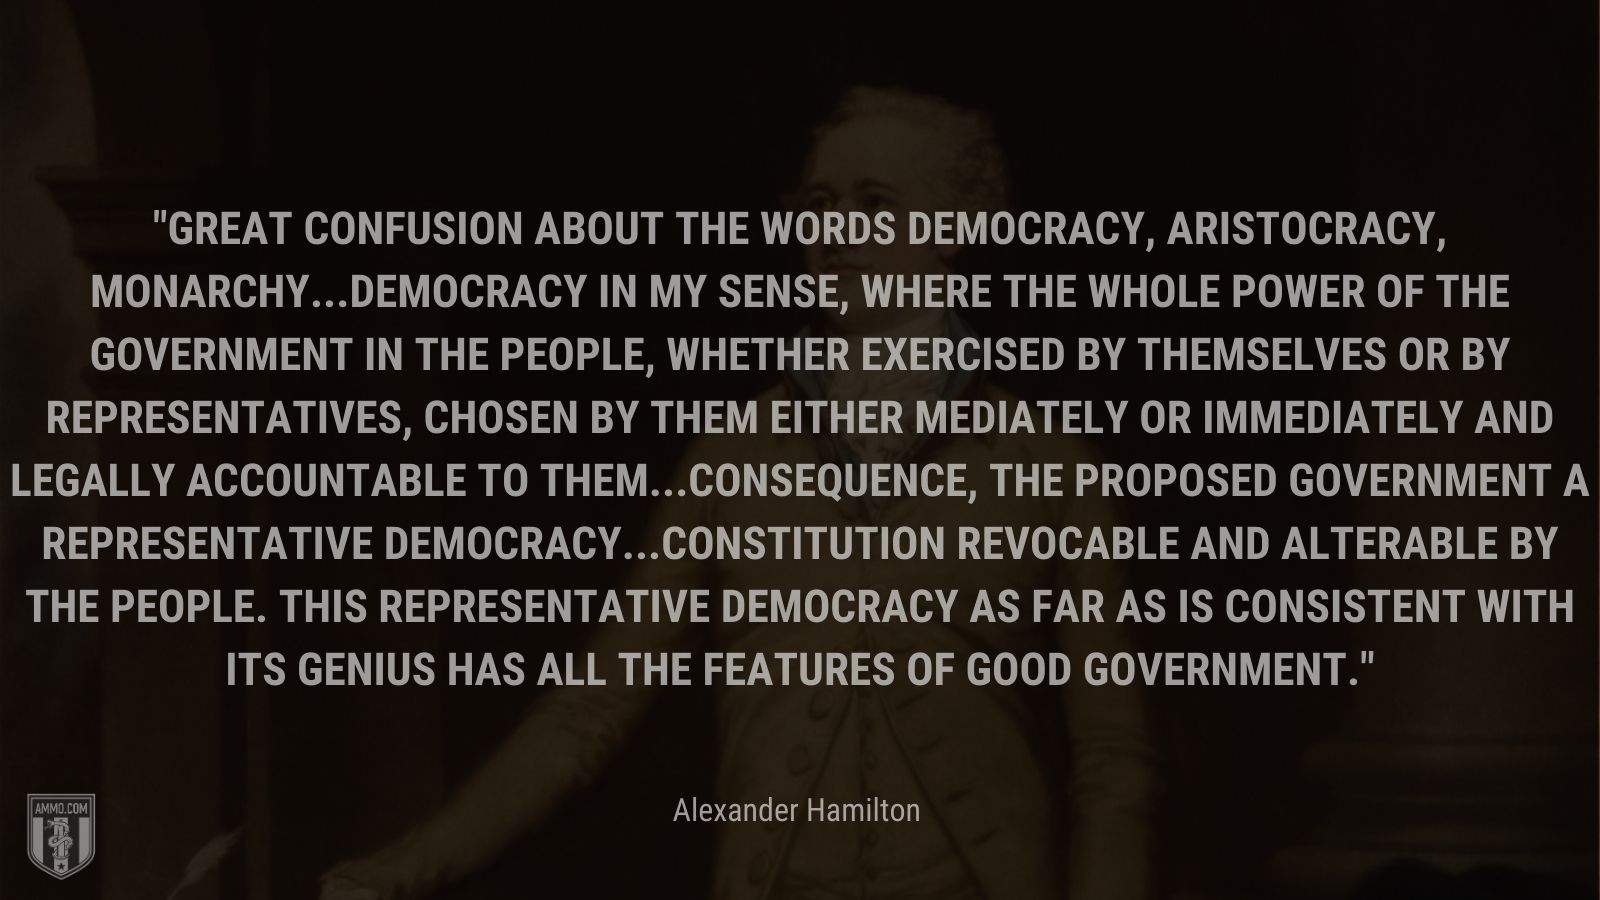 """""""Great confusion about the words democracy, aristocracy, monarchy...Democracy in my sense, where the whole power of the government in the people, whether exercised by themselves or by representatives, chosen by them either mediately or immediately and legally accountable to them...Consequence, the proposed government a representative democracy...Constitution revocable and alterable by the people. This representative democracy as far as is consistent with its genius has all the features of good government."""" - Alexander Hamilton"""